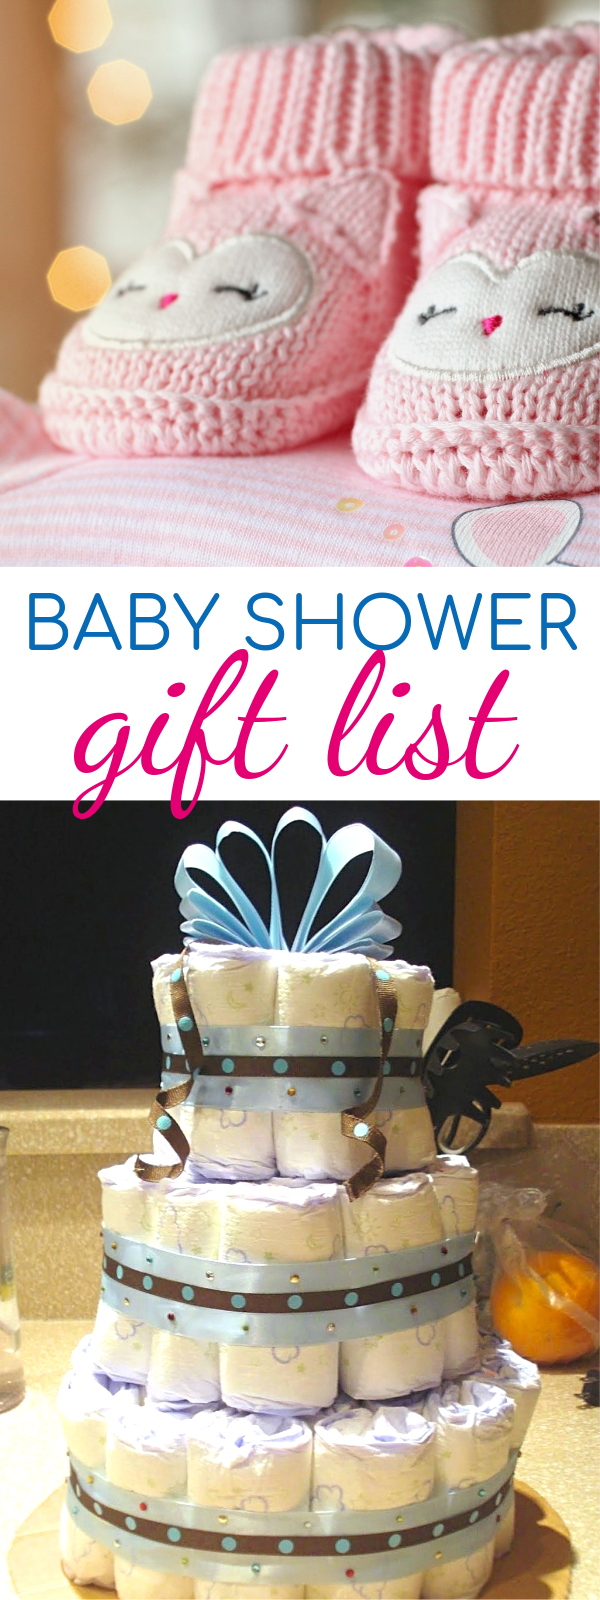 Baby Shower Gift List - 5 Creative and Unique Baby Shower Gift Ideas